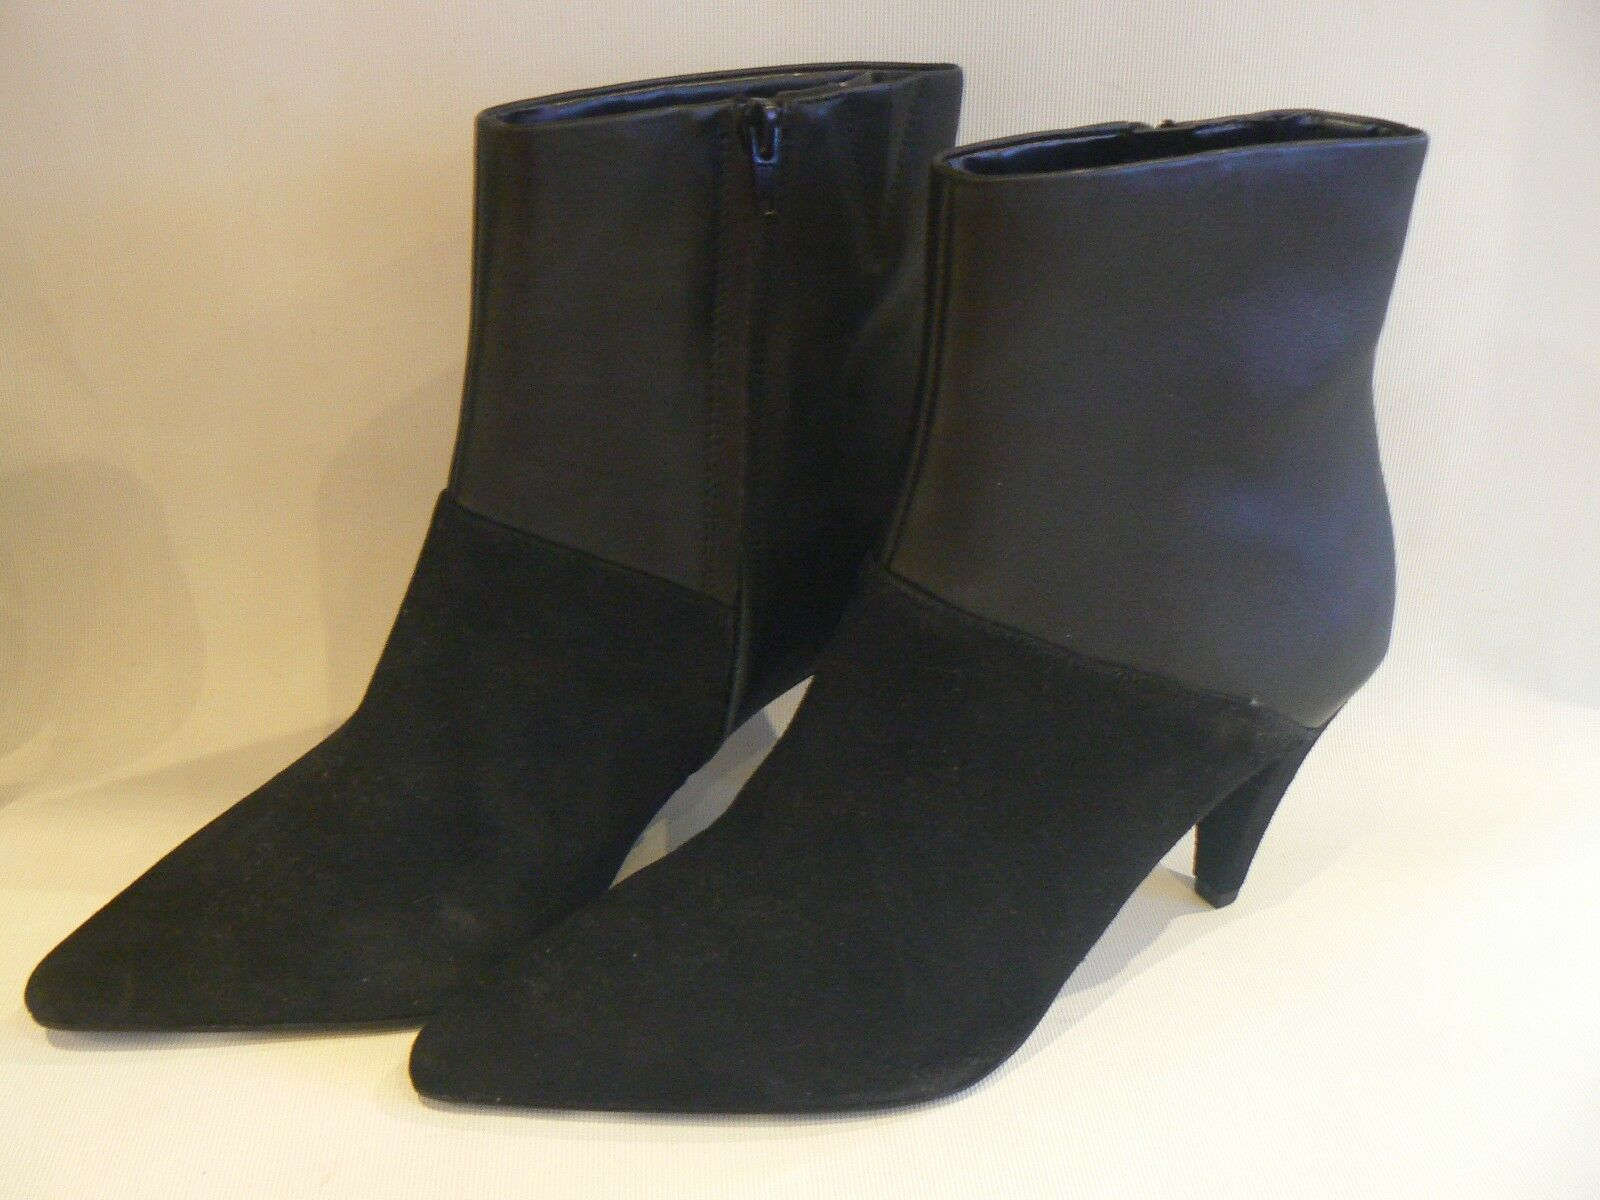 M&S Marks Spencer Black Suede & Leather Ankle Boots Insolia Size 7.5 NEW LABELS